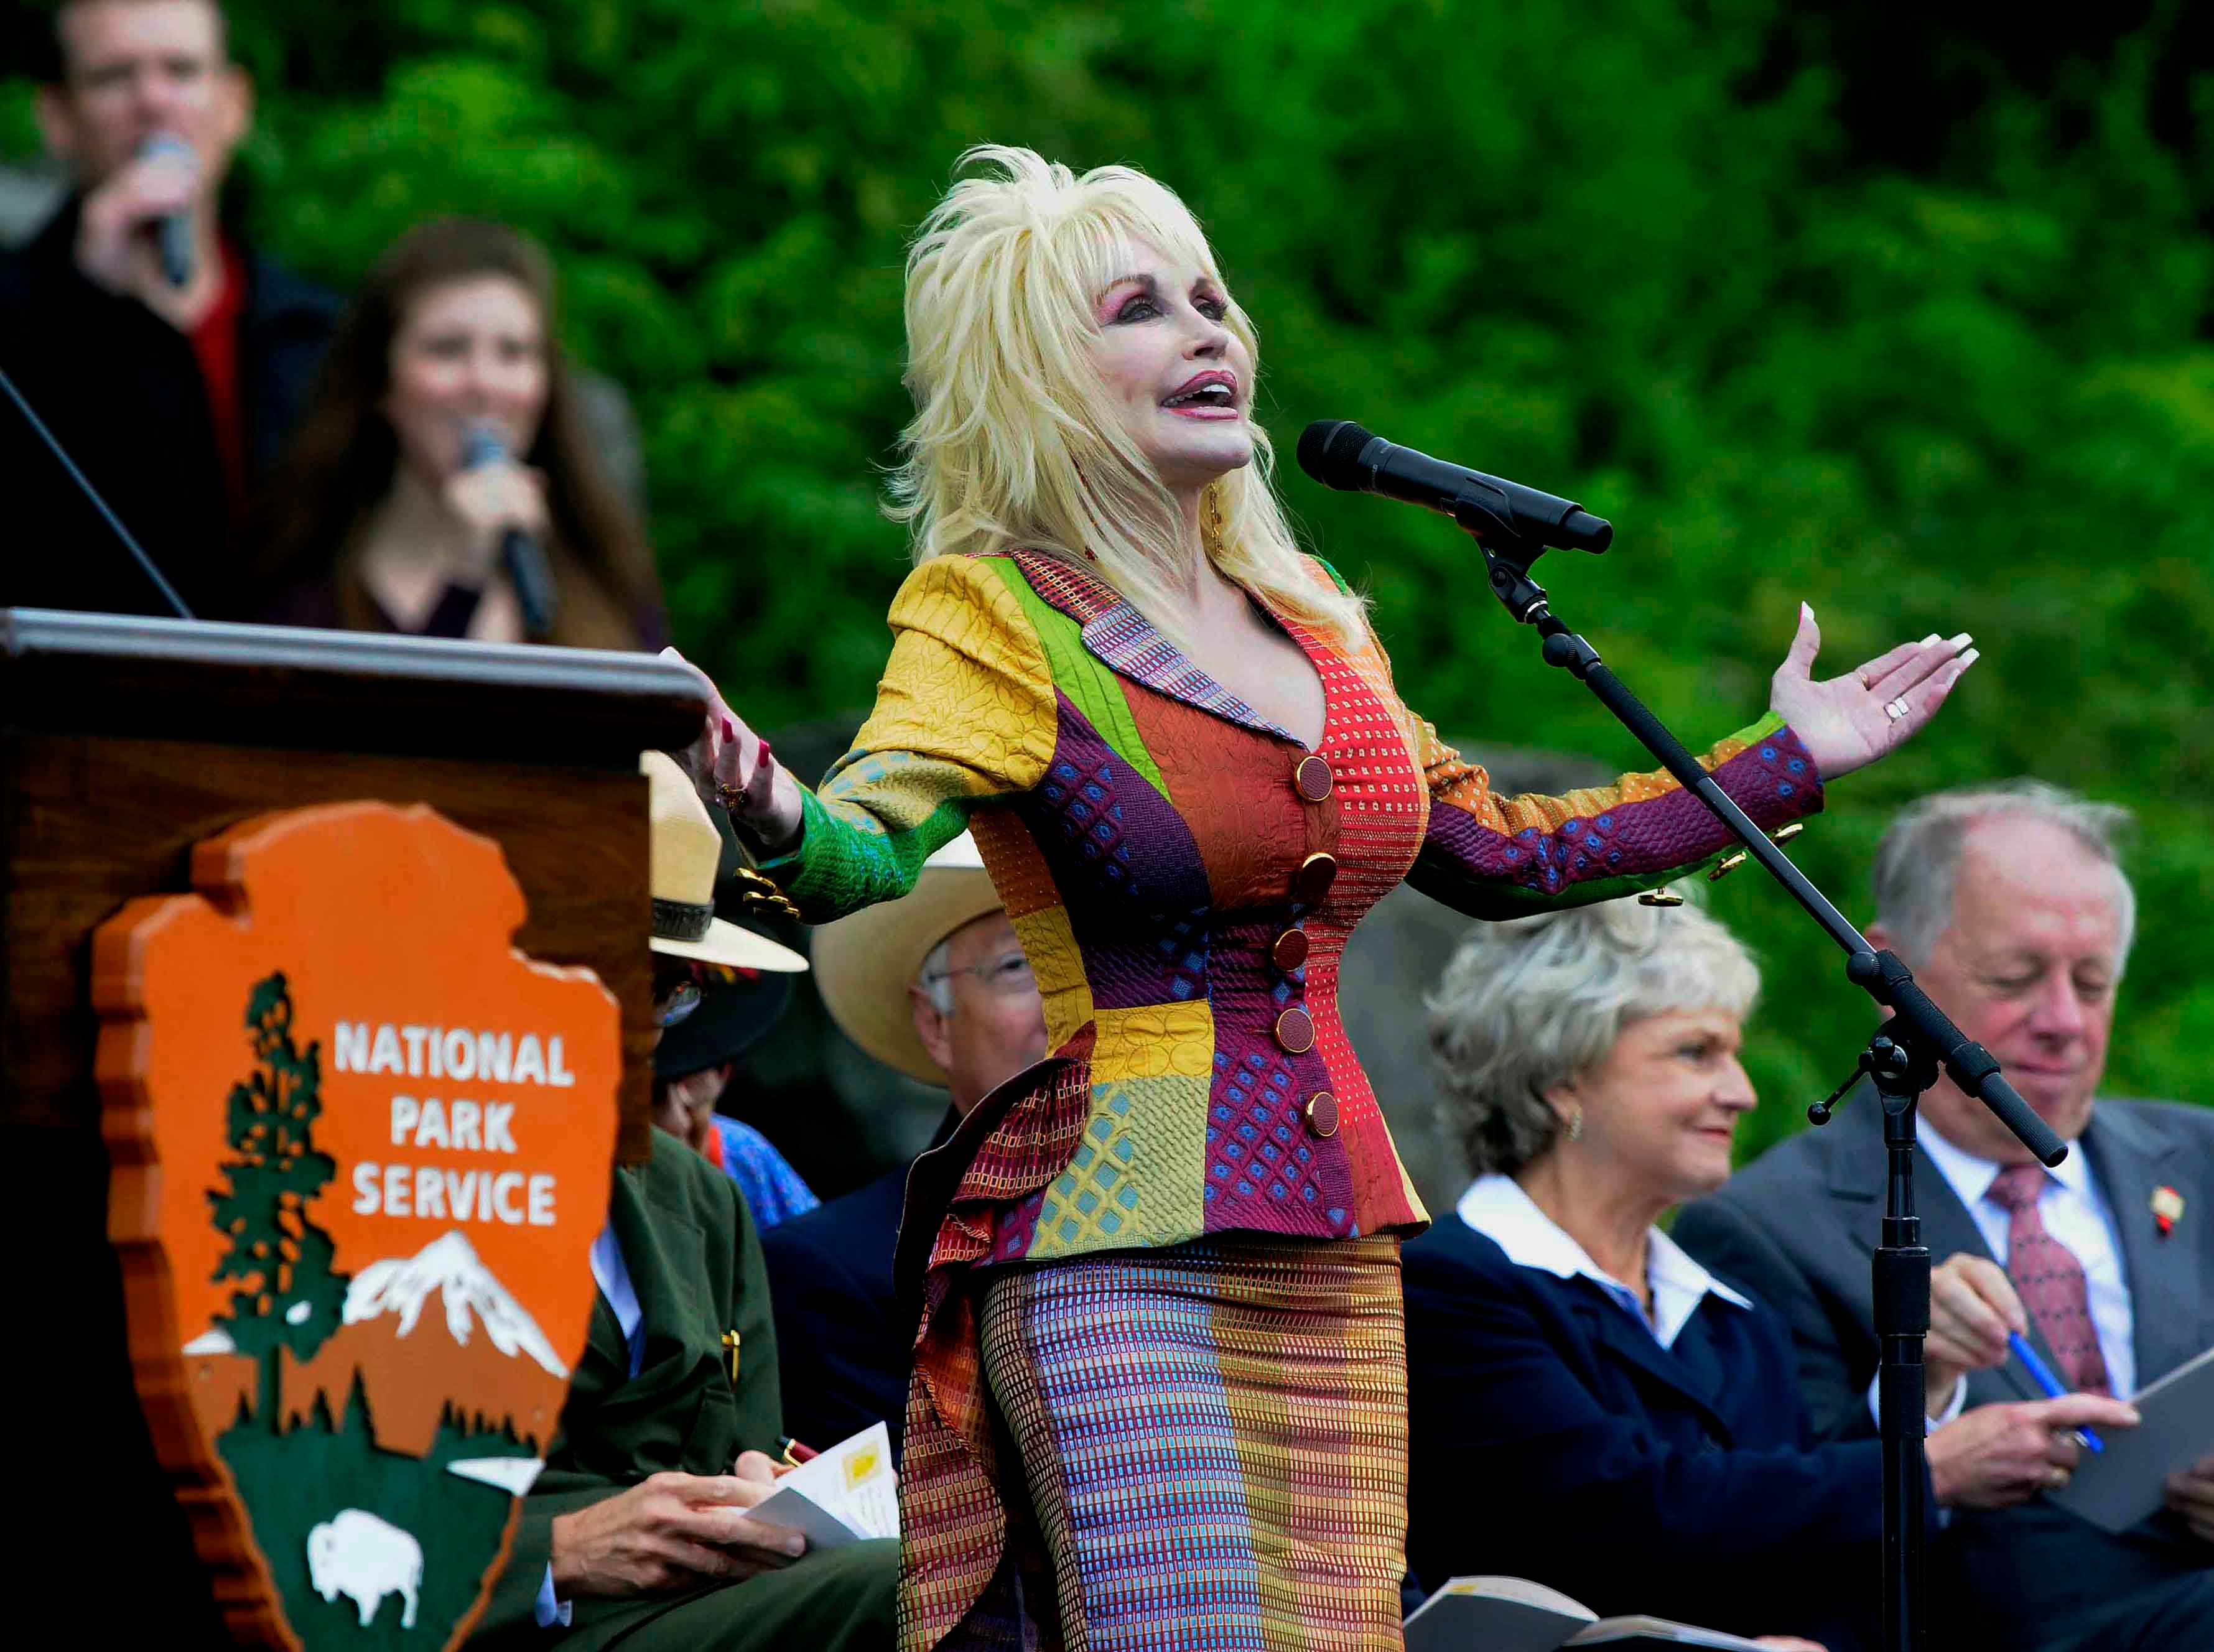 Dolly Parton sings the closing song during the 75th anniversary re-dedication of the Great Smoky Mountains National Park on Wednesday, September 2, 2009 at Newfound Gap.